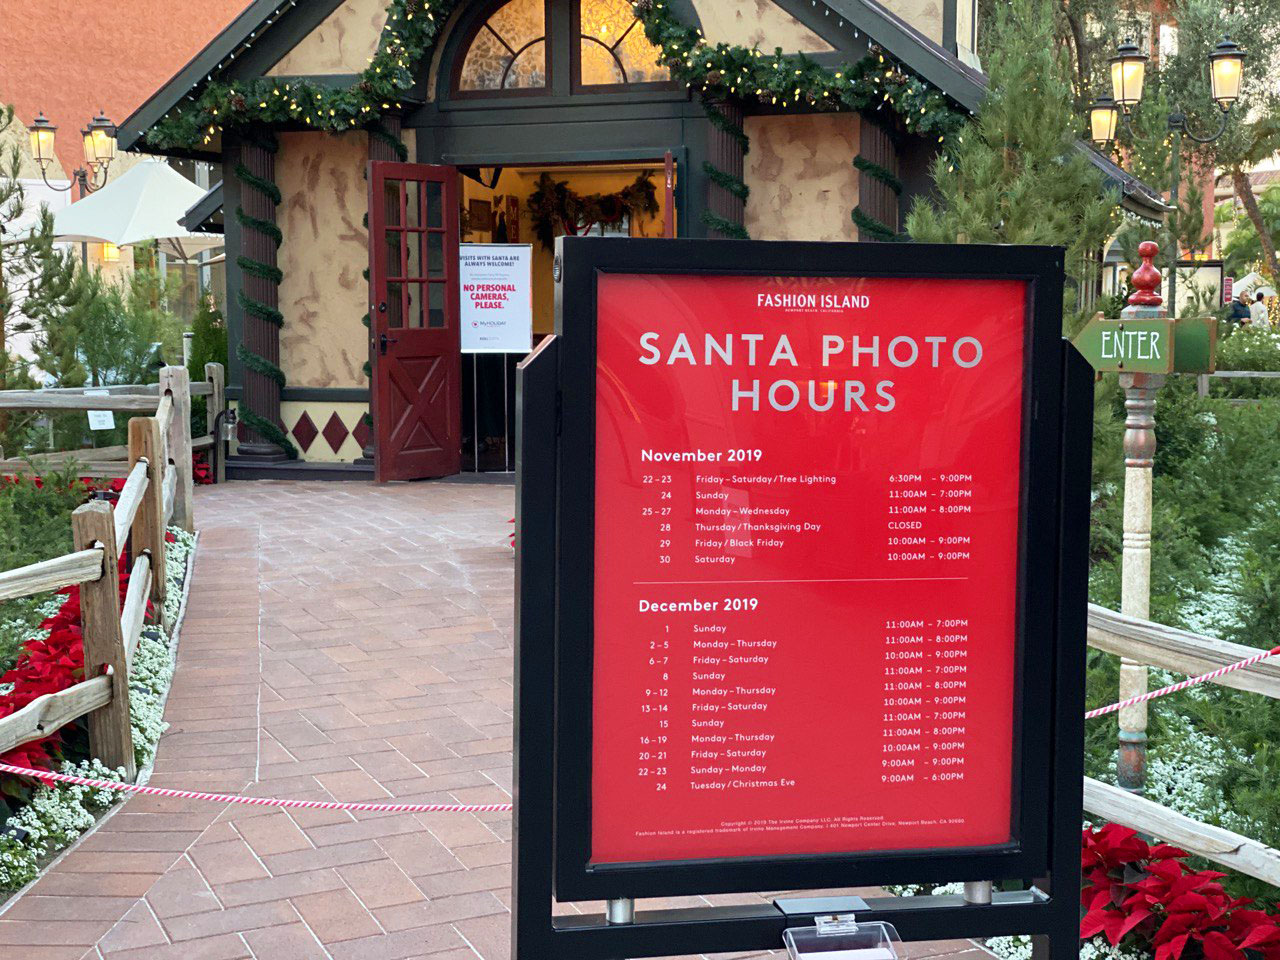 Santa Photo Pricing